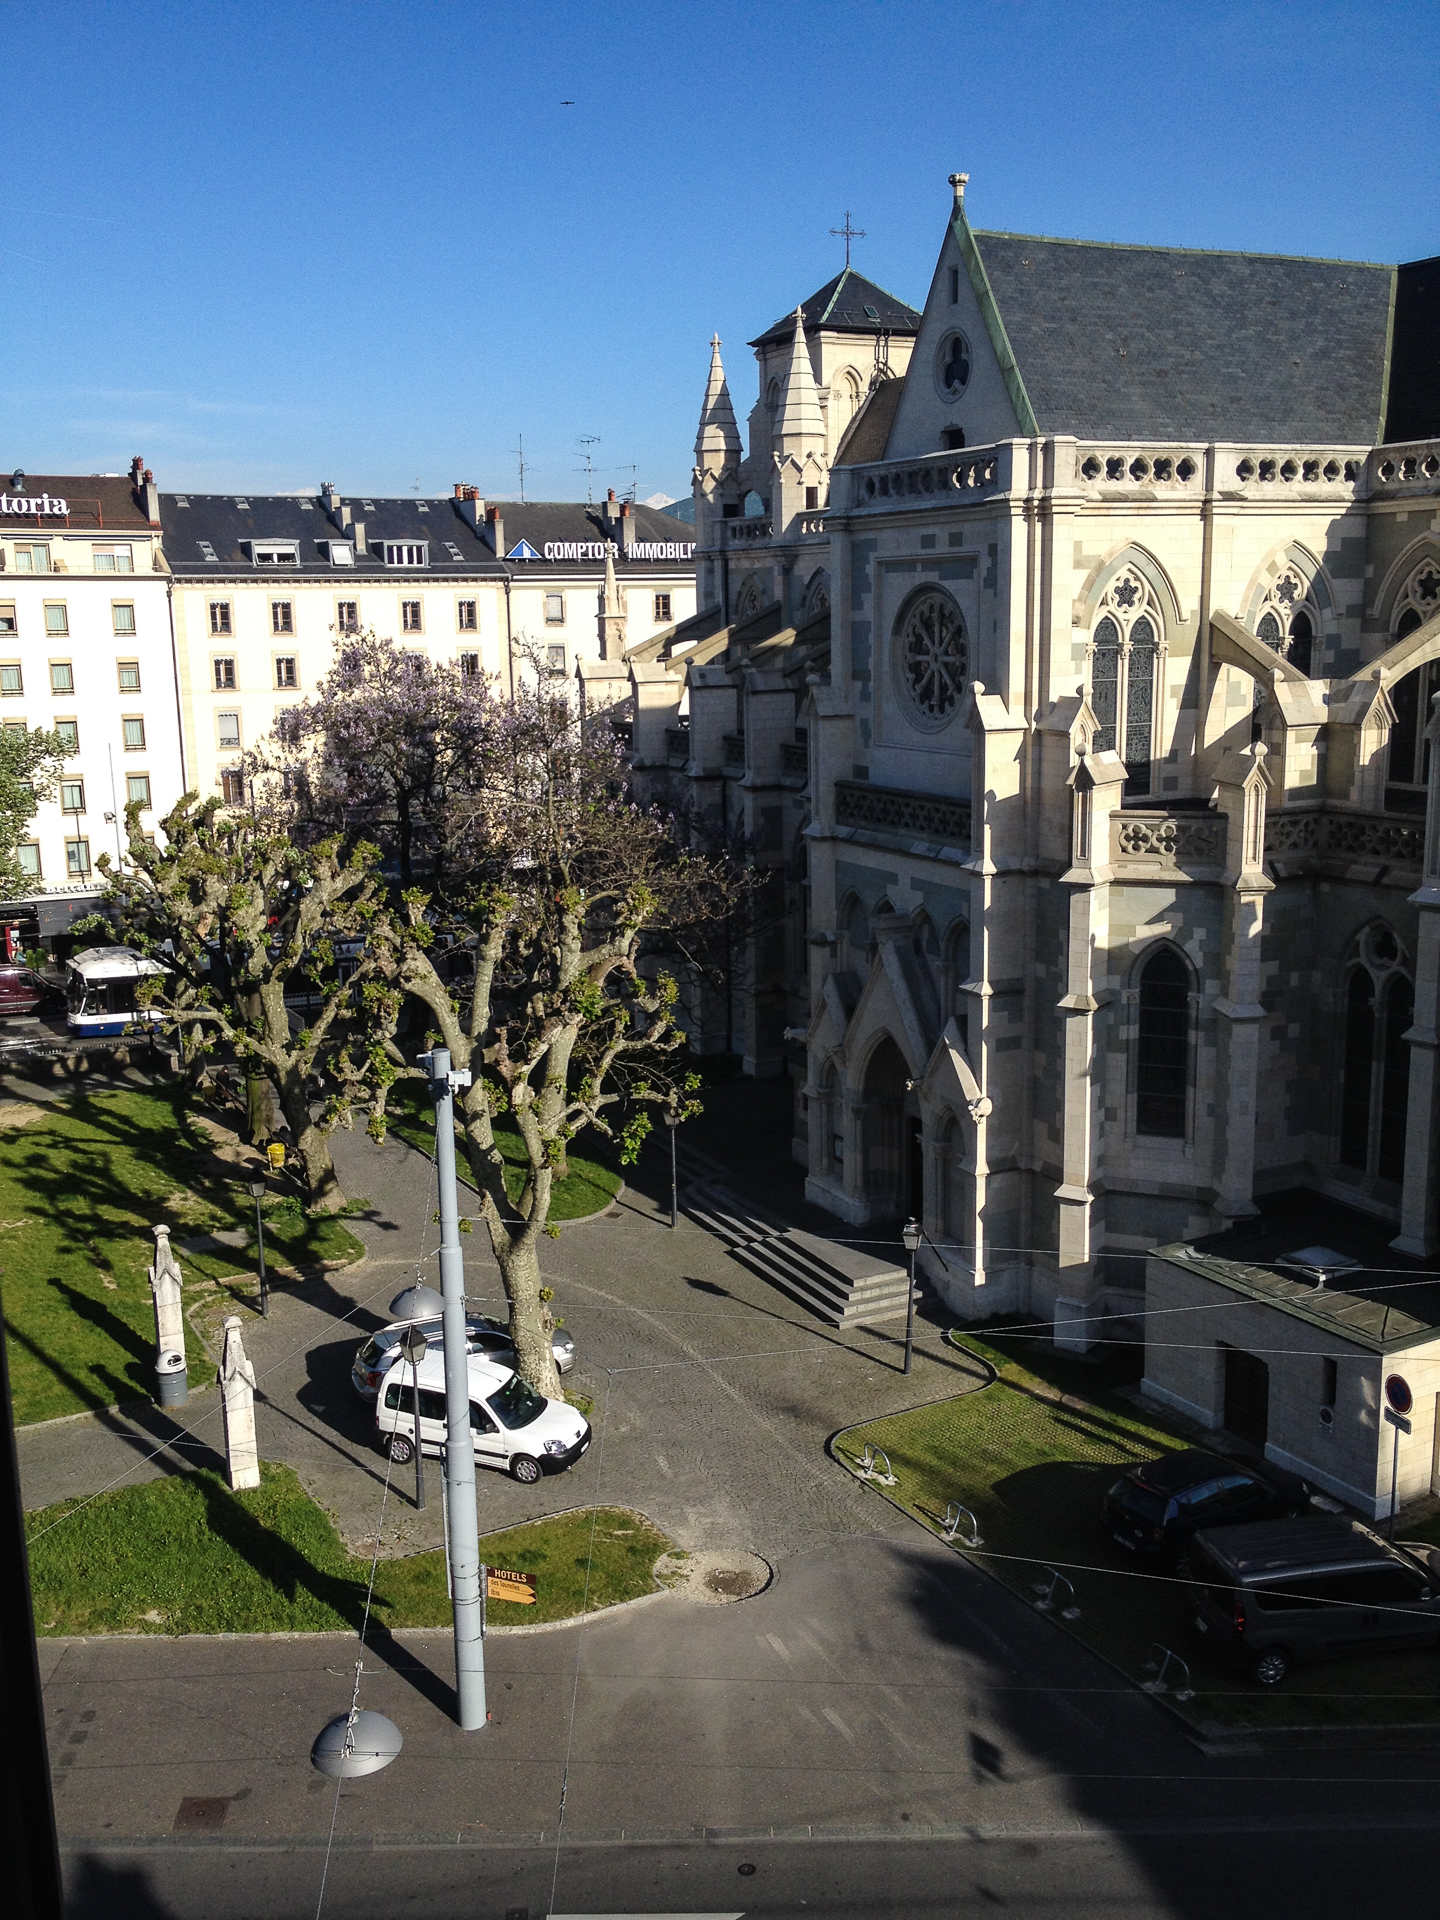 The view out of the window of my hotel room was surprisingly nice. I had a good view of the Notre-Dame Cathedral, across the street.